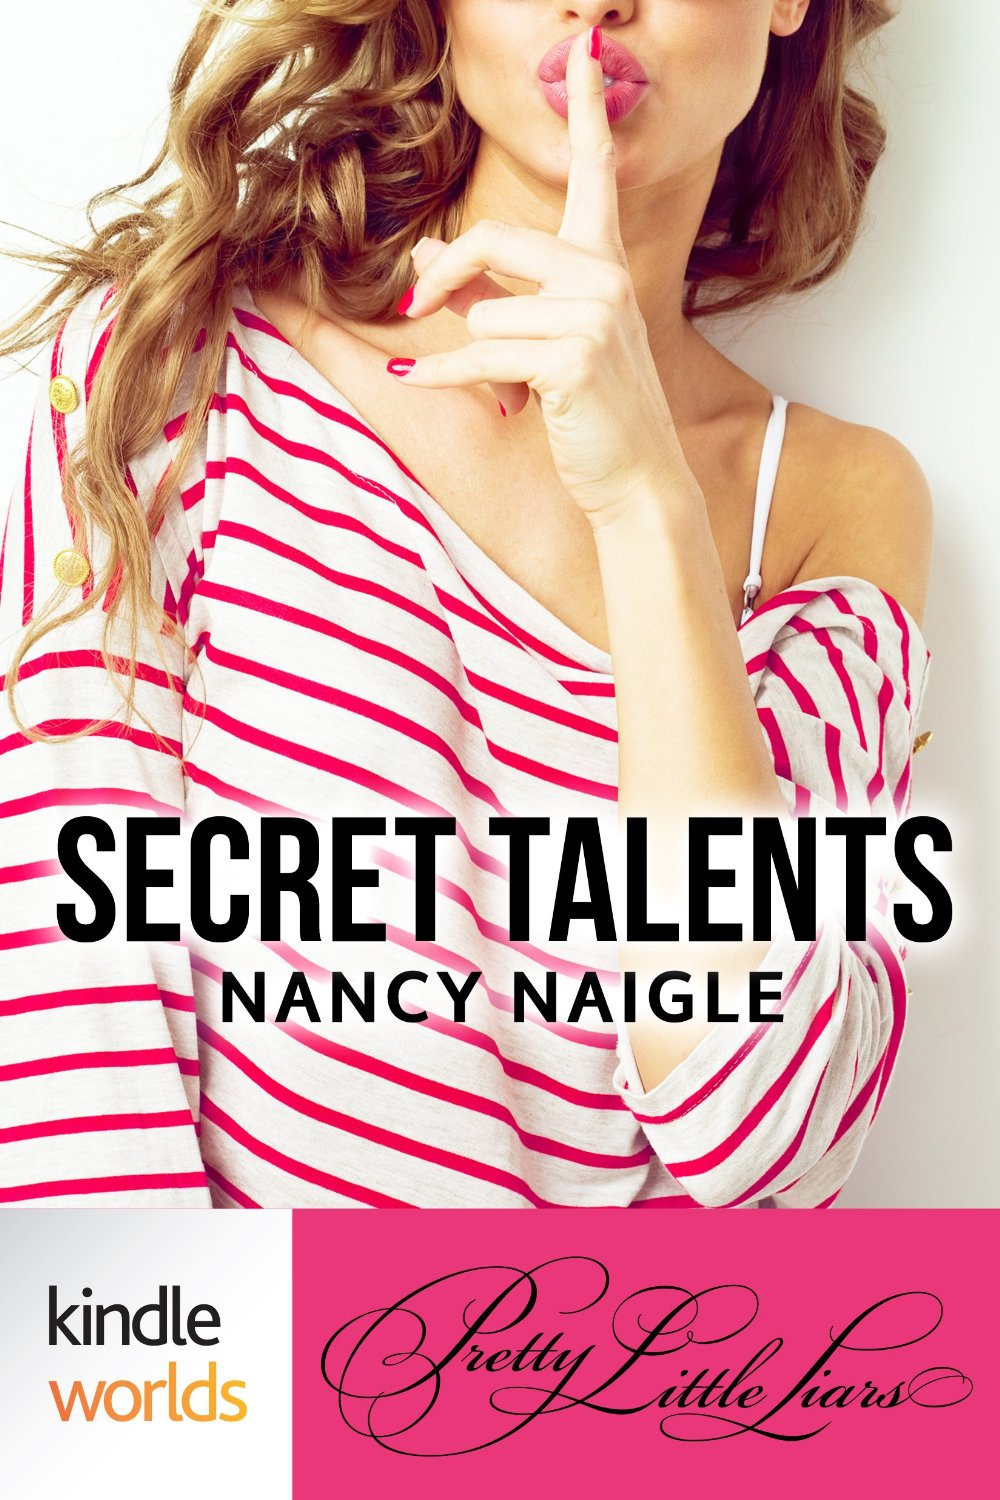 Secret Talents Nancy Naigle.jpg